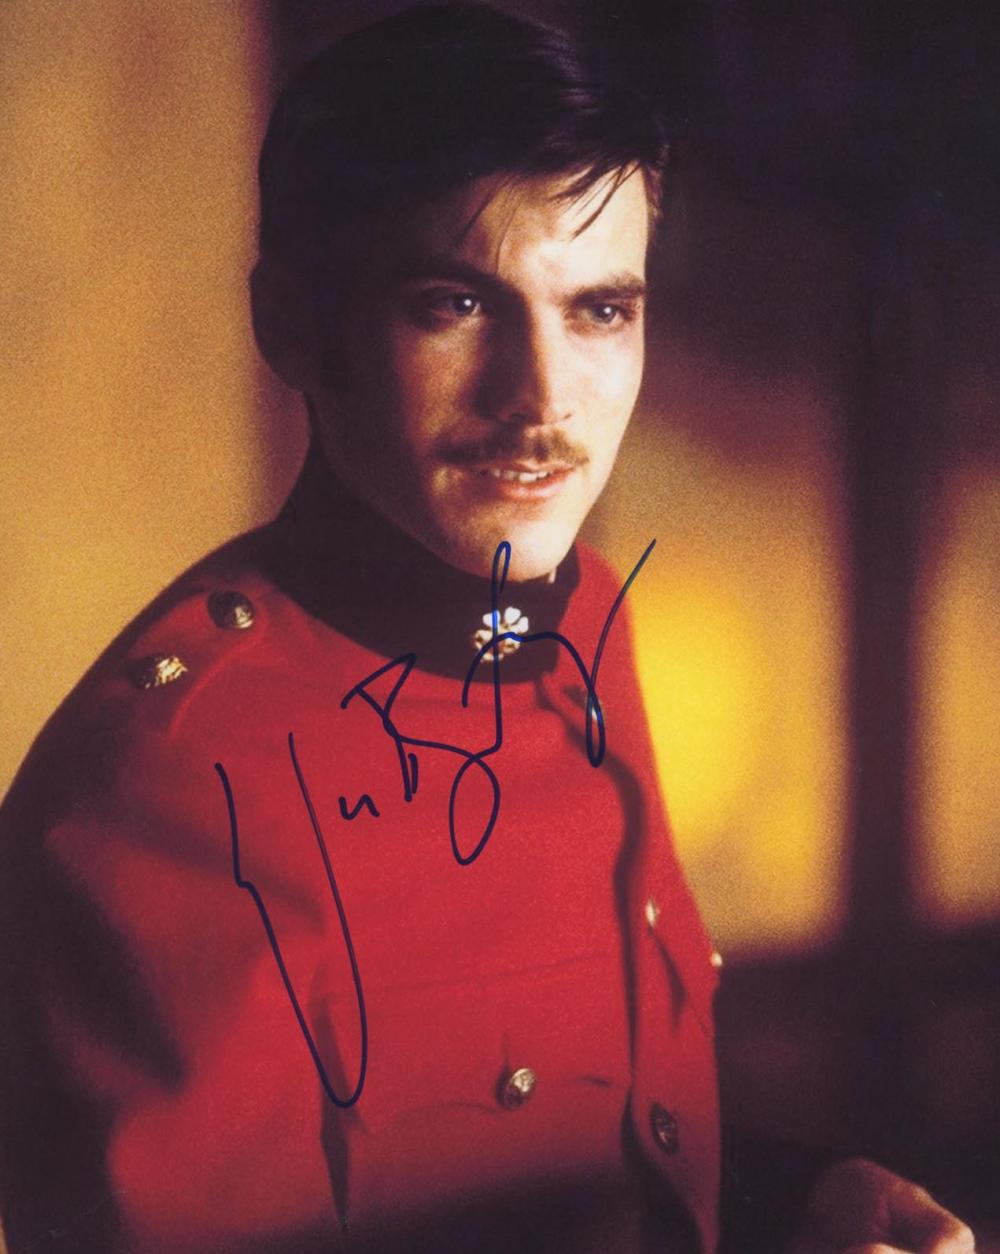 Sold Price The Four Feathers Wes Bentley Signed Movie Photo September 6 0120 9 00 Am Pdt